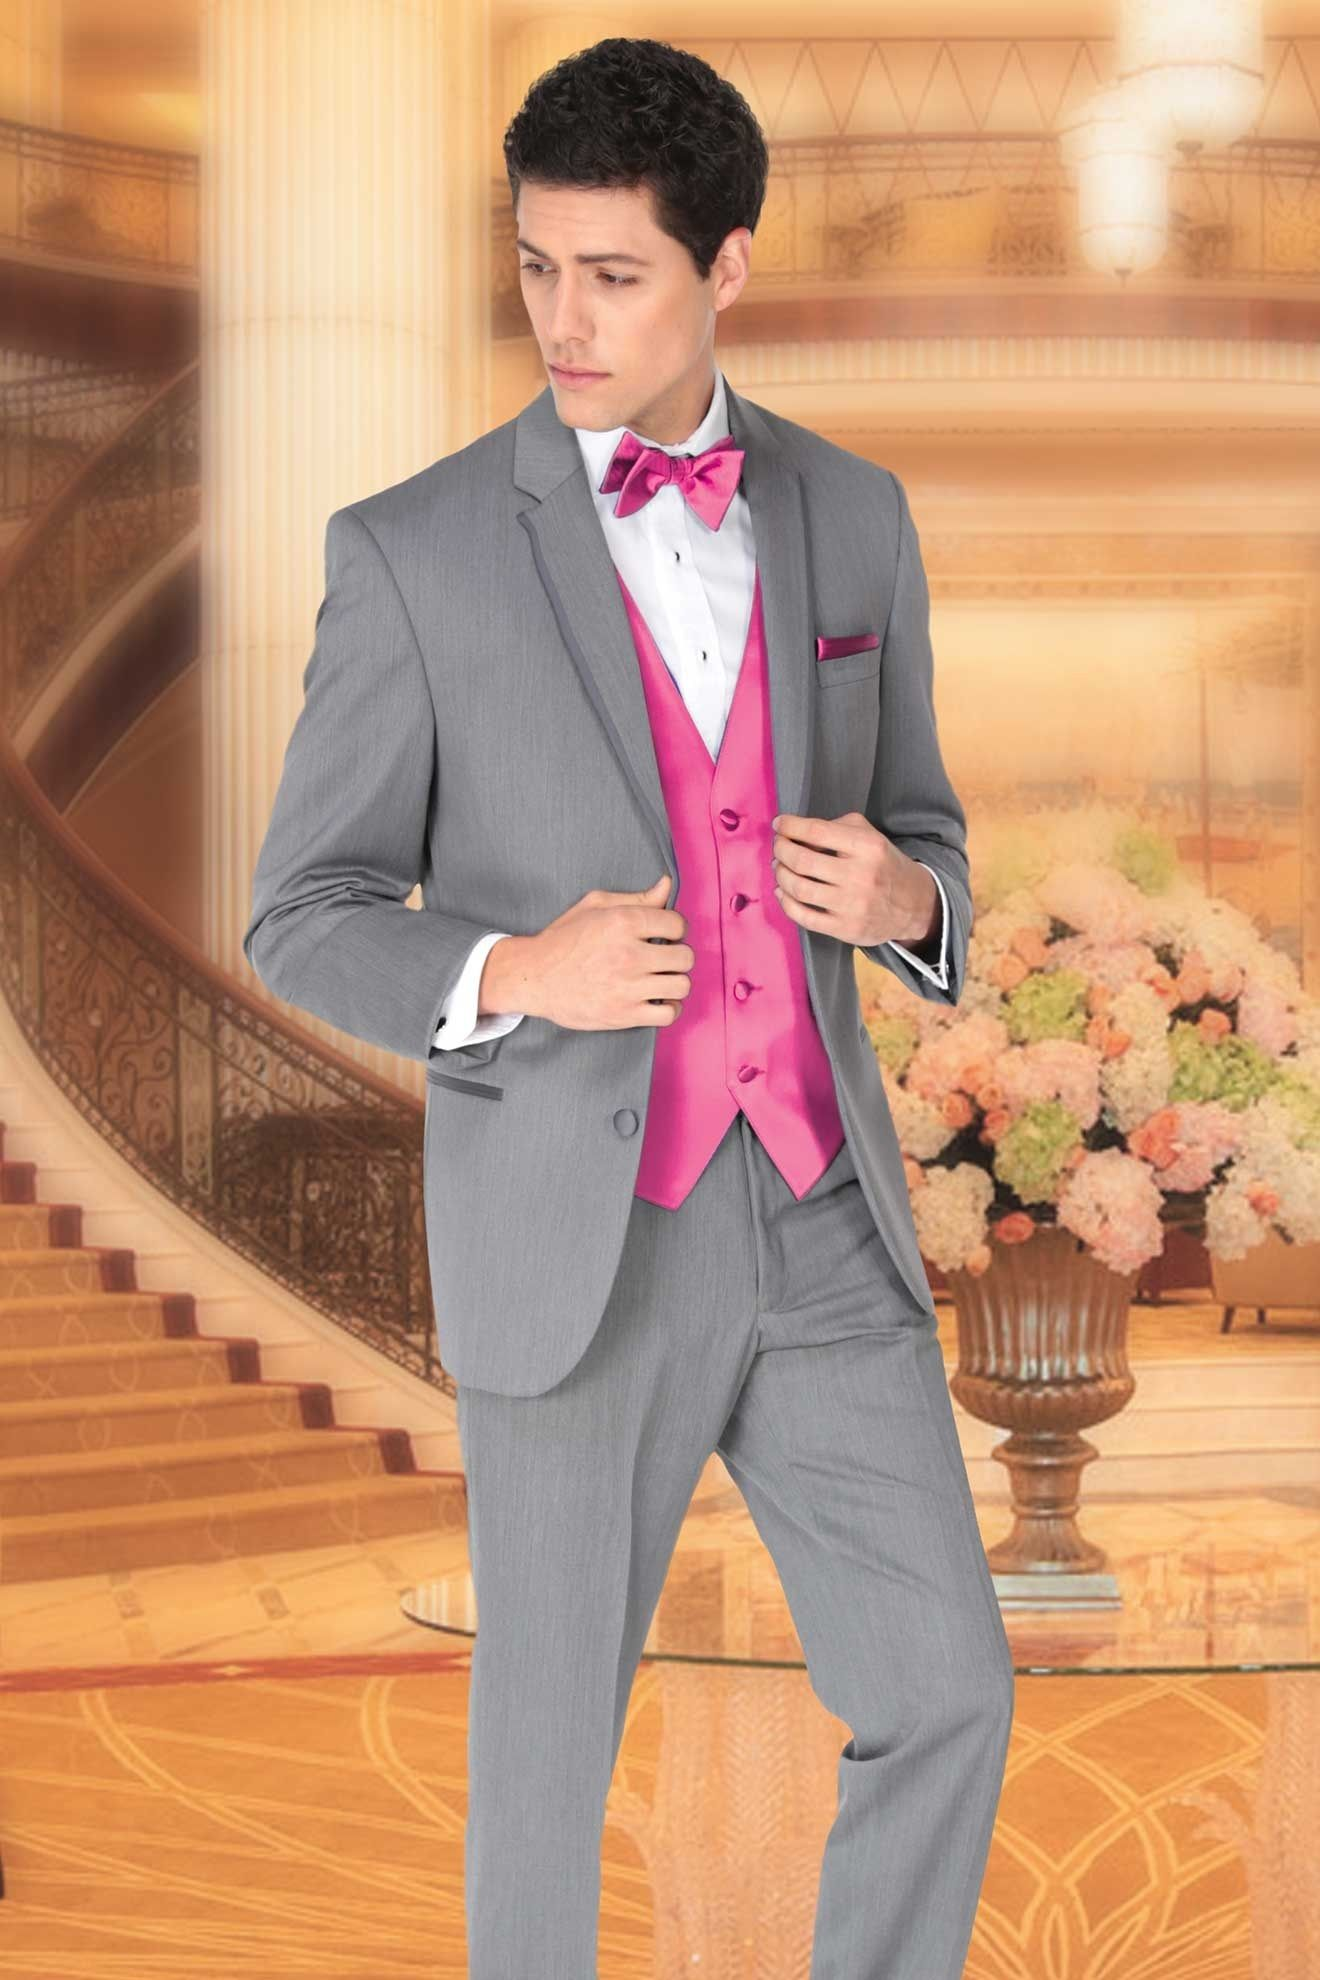 Old Fashioned Pink Prom Suits Vignette - Wedding Dress Ideas ...